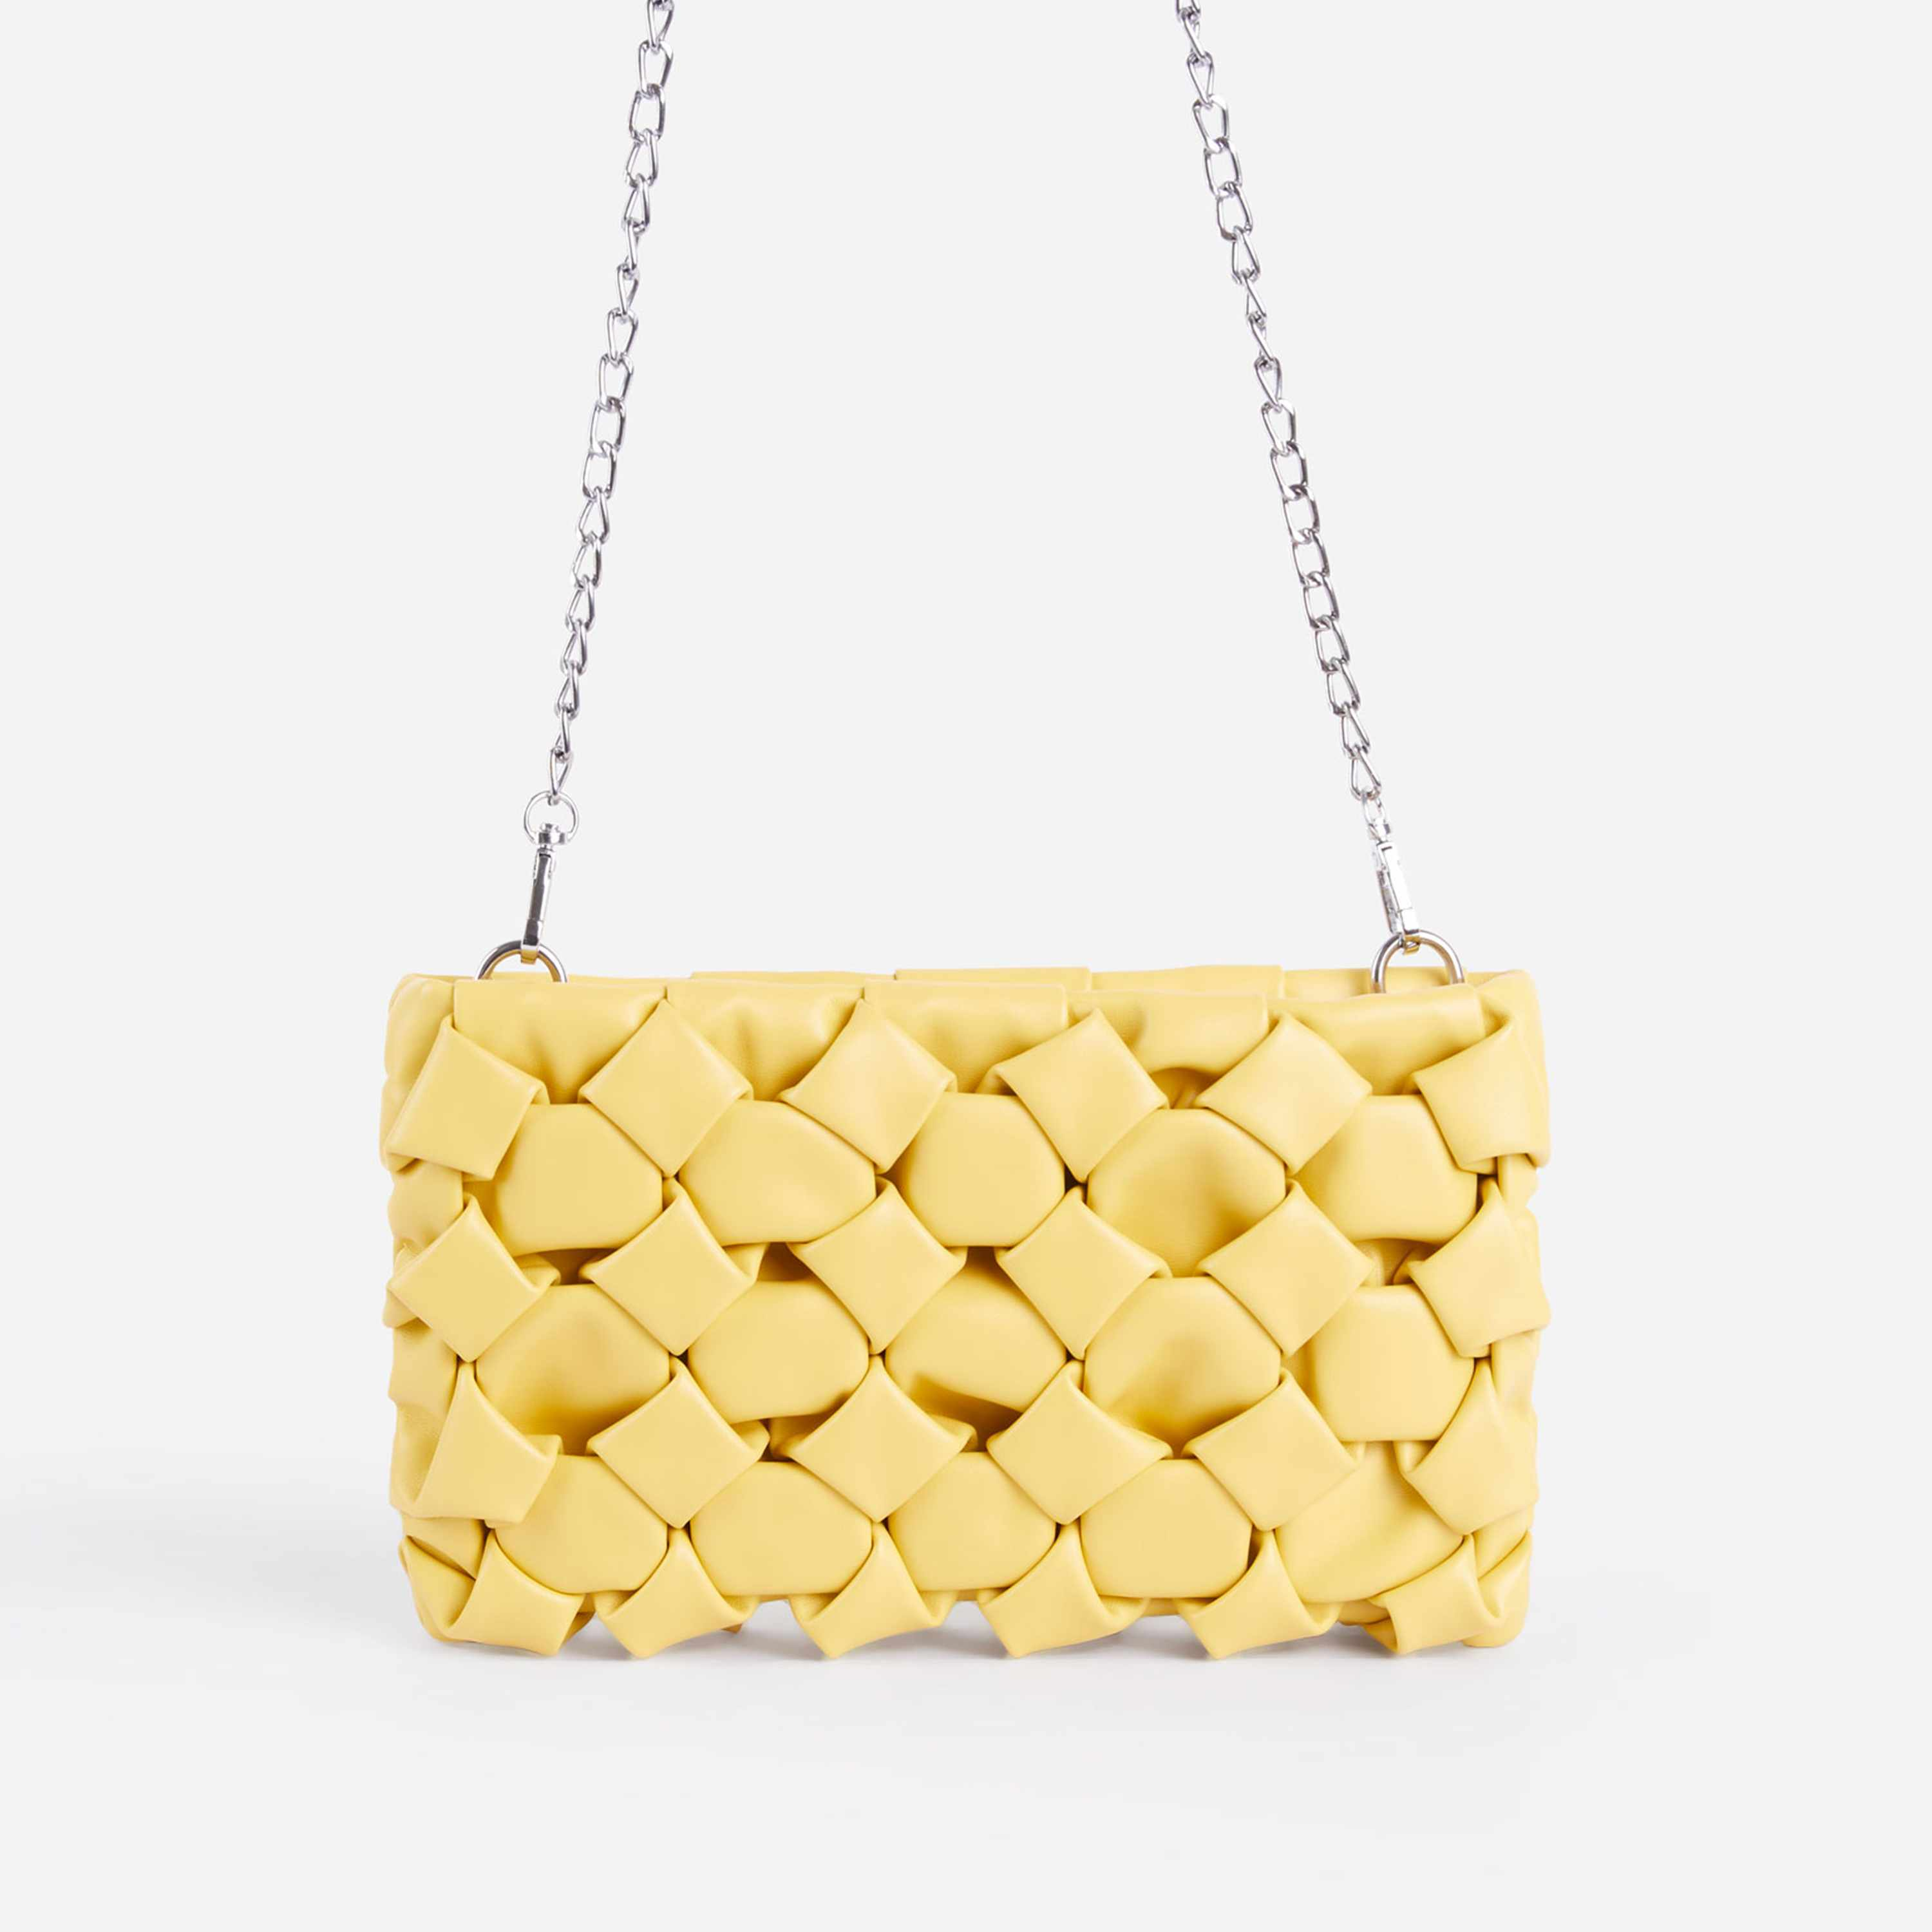 Naya Woven Detail Chain Shoulder Bag In Yellow Faux Leather